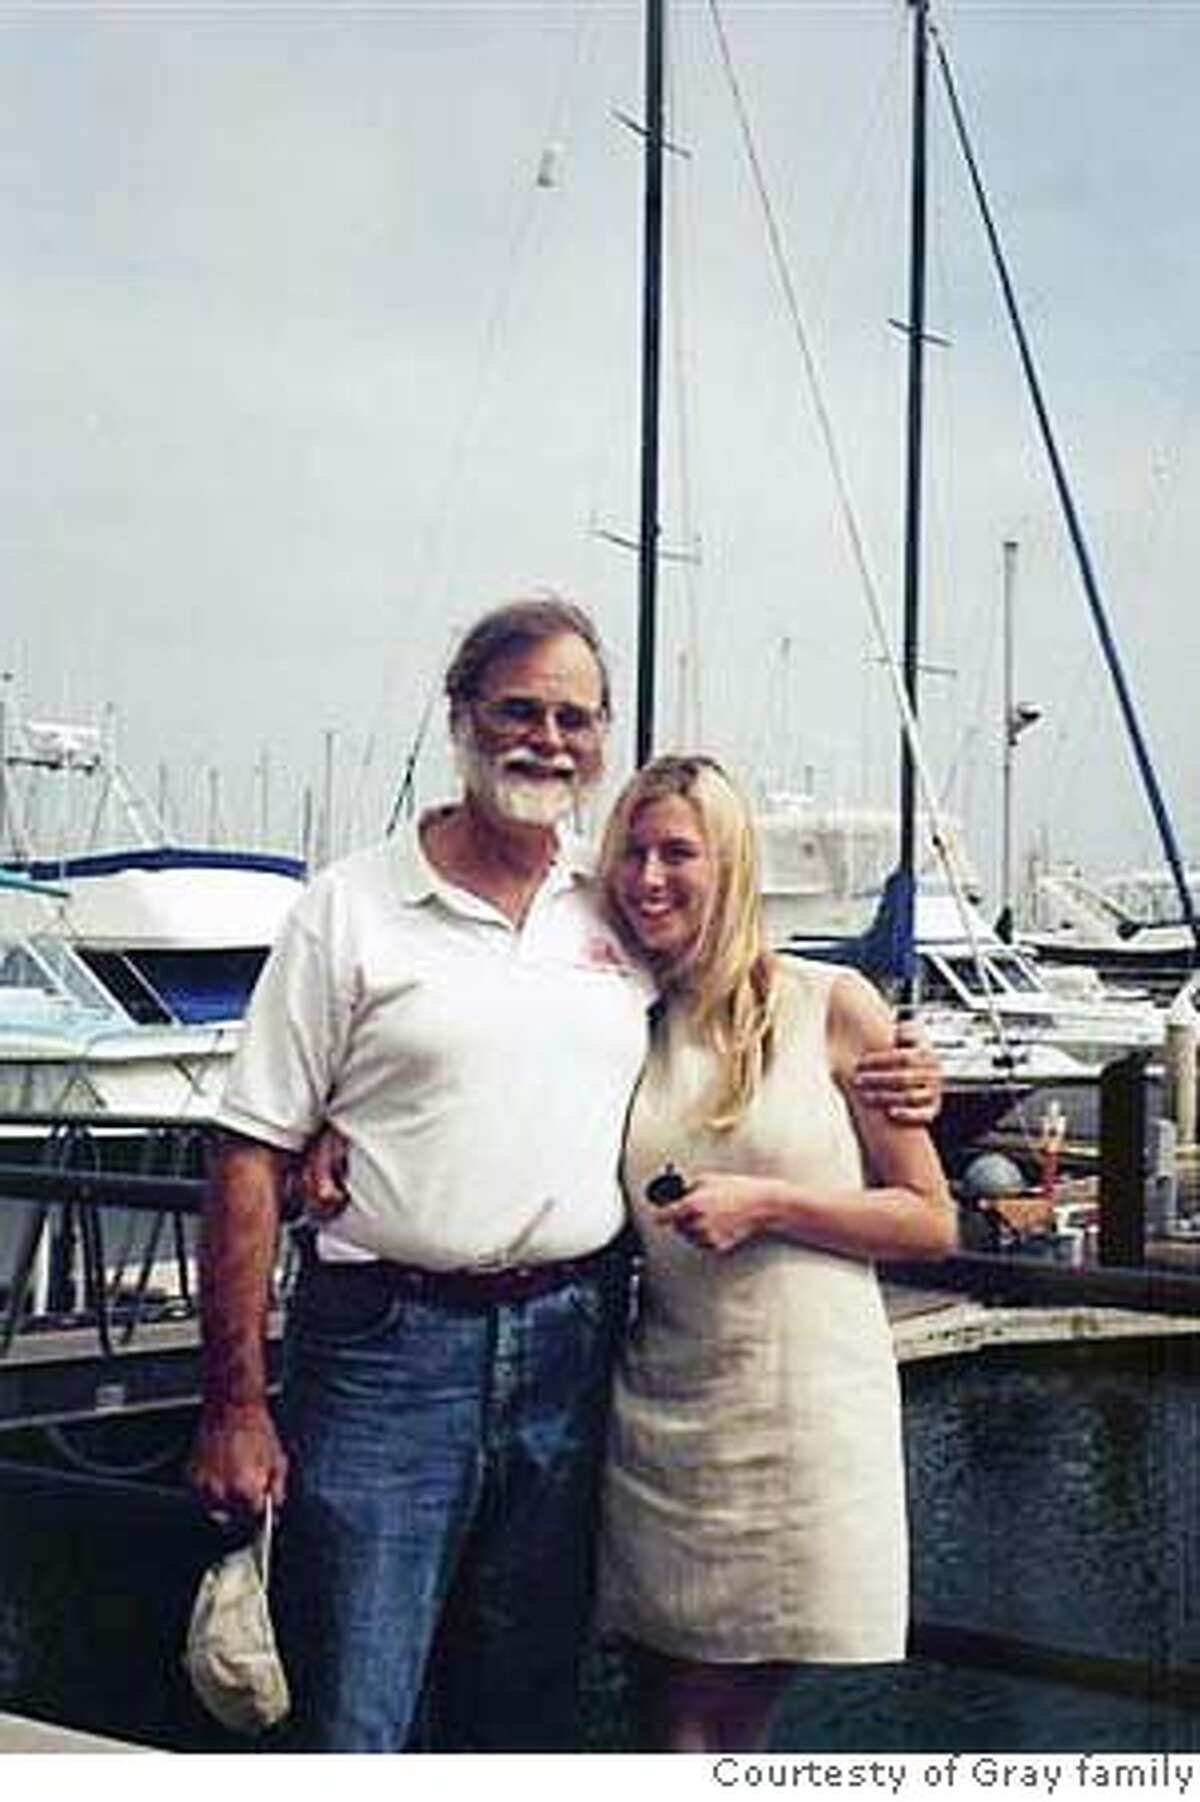 Photo of Jim Gray (left). Gray was reported missing when his 40-foot sailboat apparently disappeared on a day cruise to the Farallon Islands, Sunday Jan. 28, 2007. FAMILY HANDOUT PHOTO.